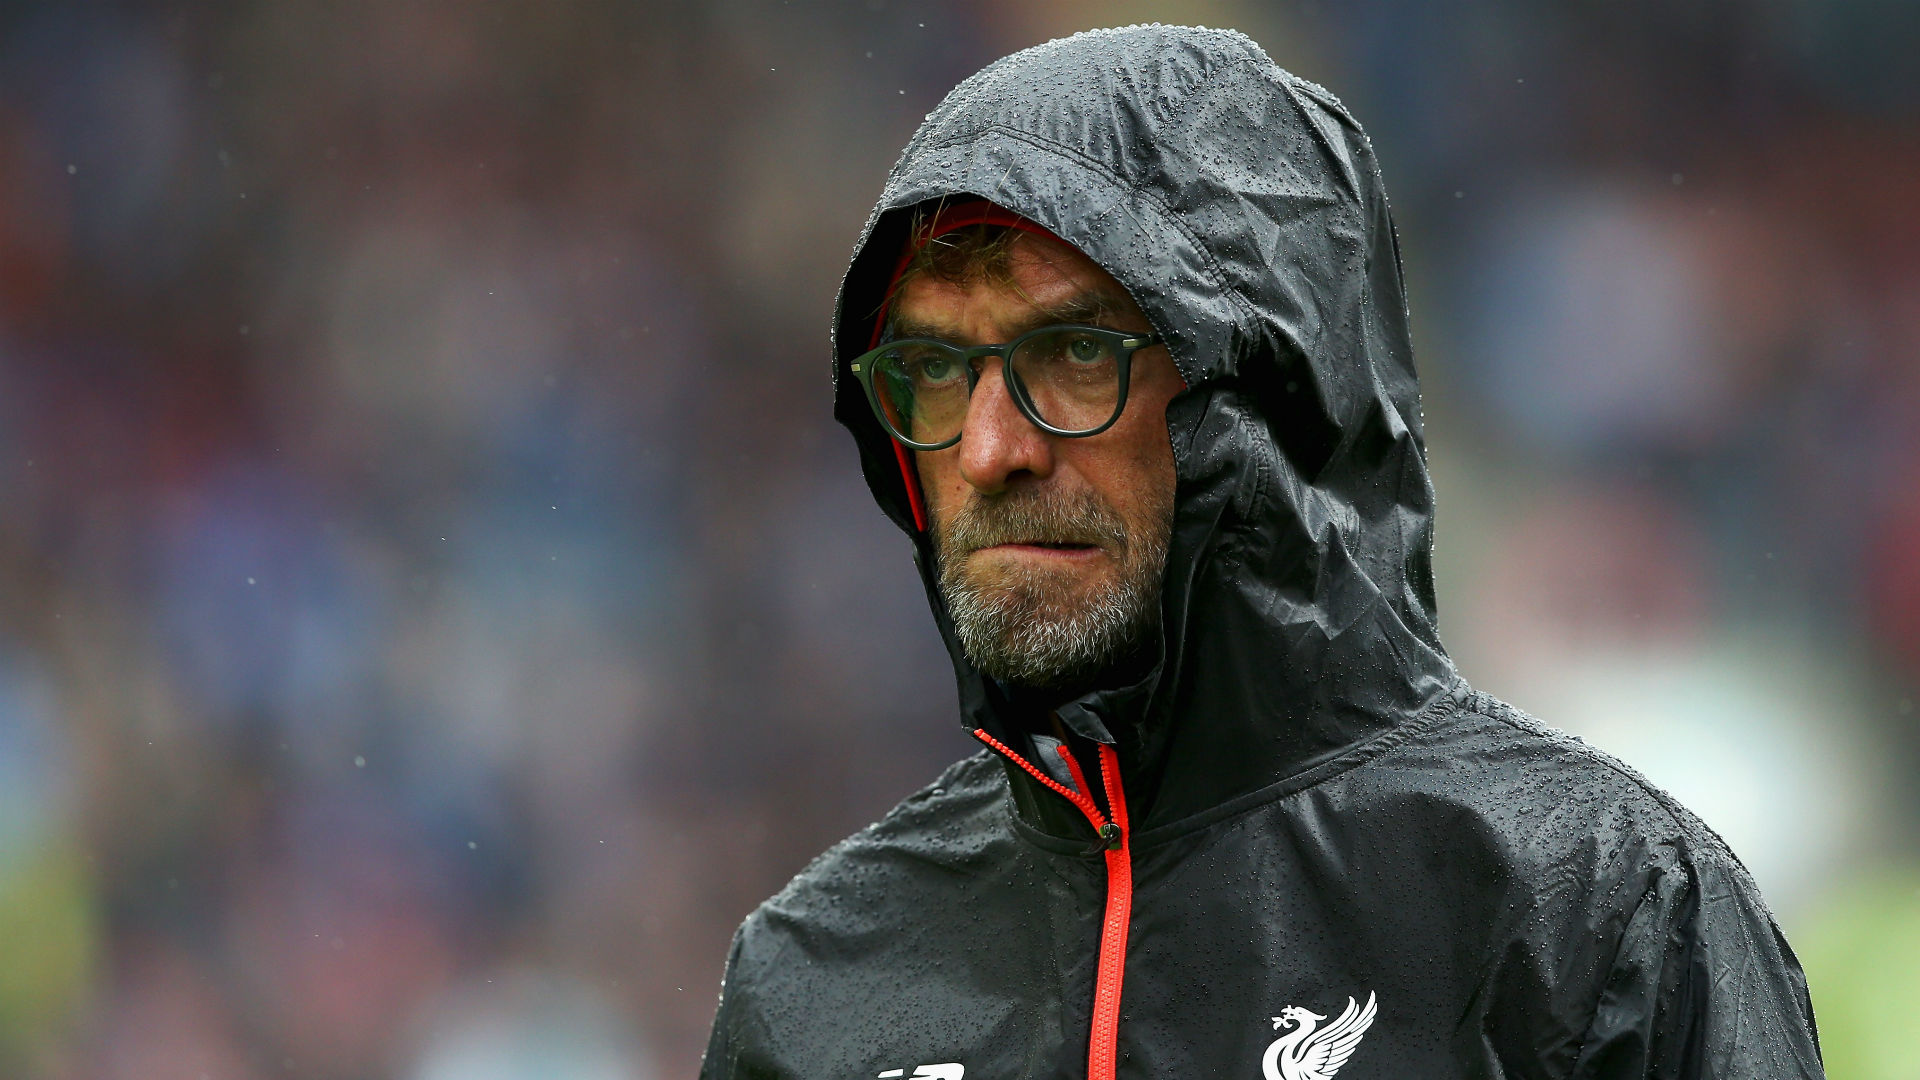 Klopp contract extension at Liverpool may be weather dependent, says agent